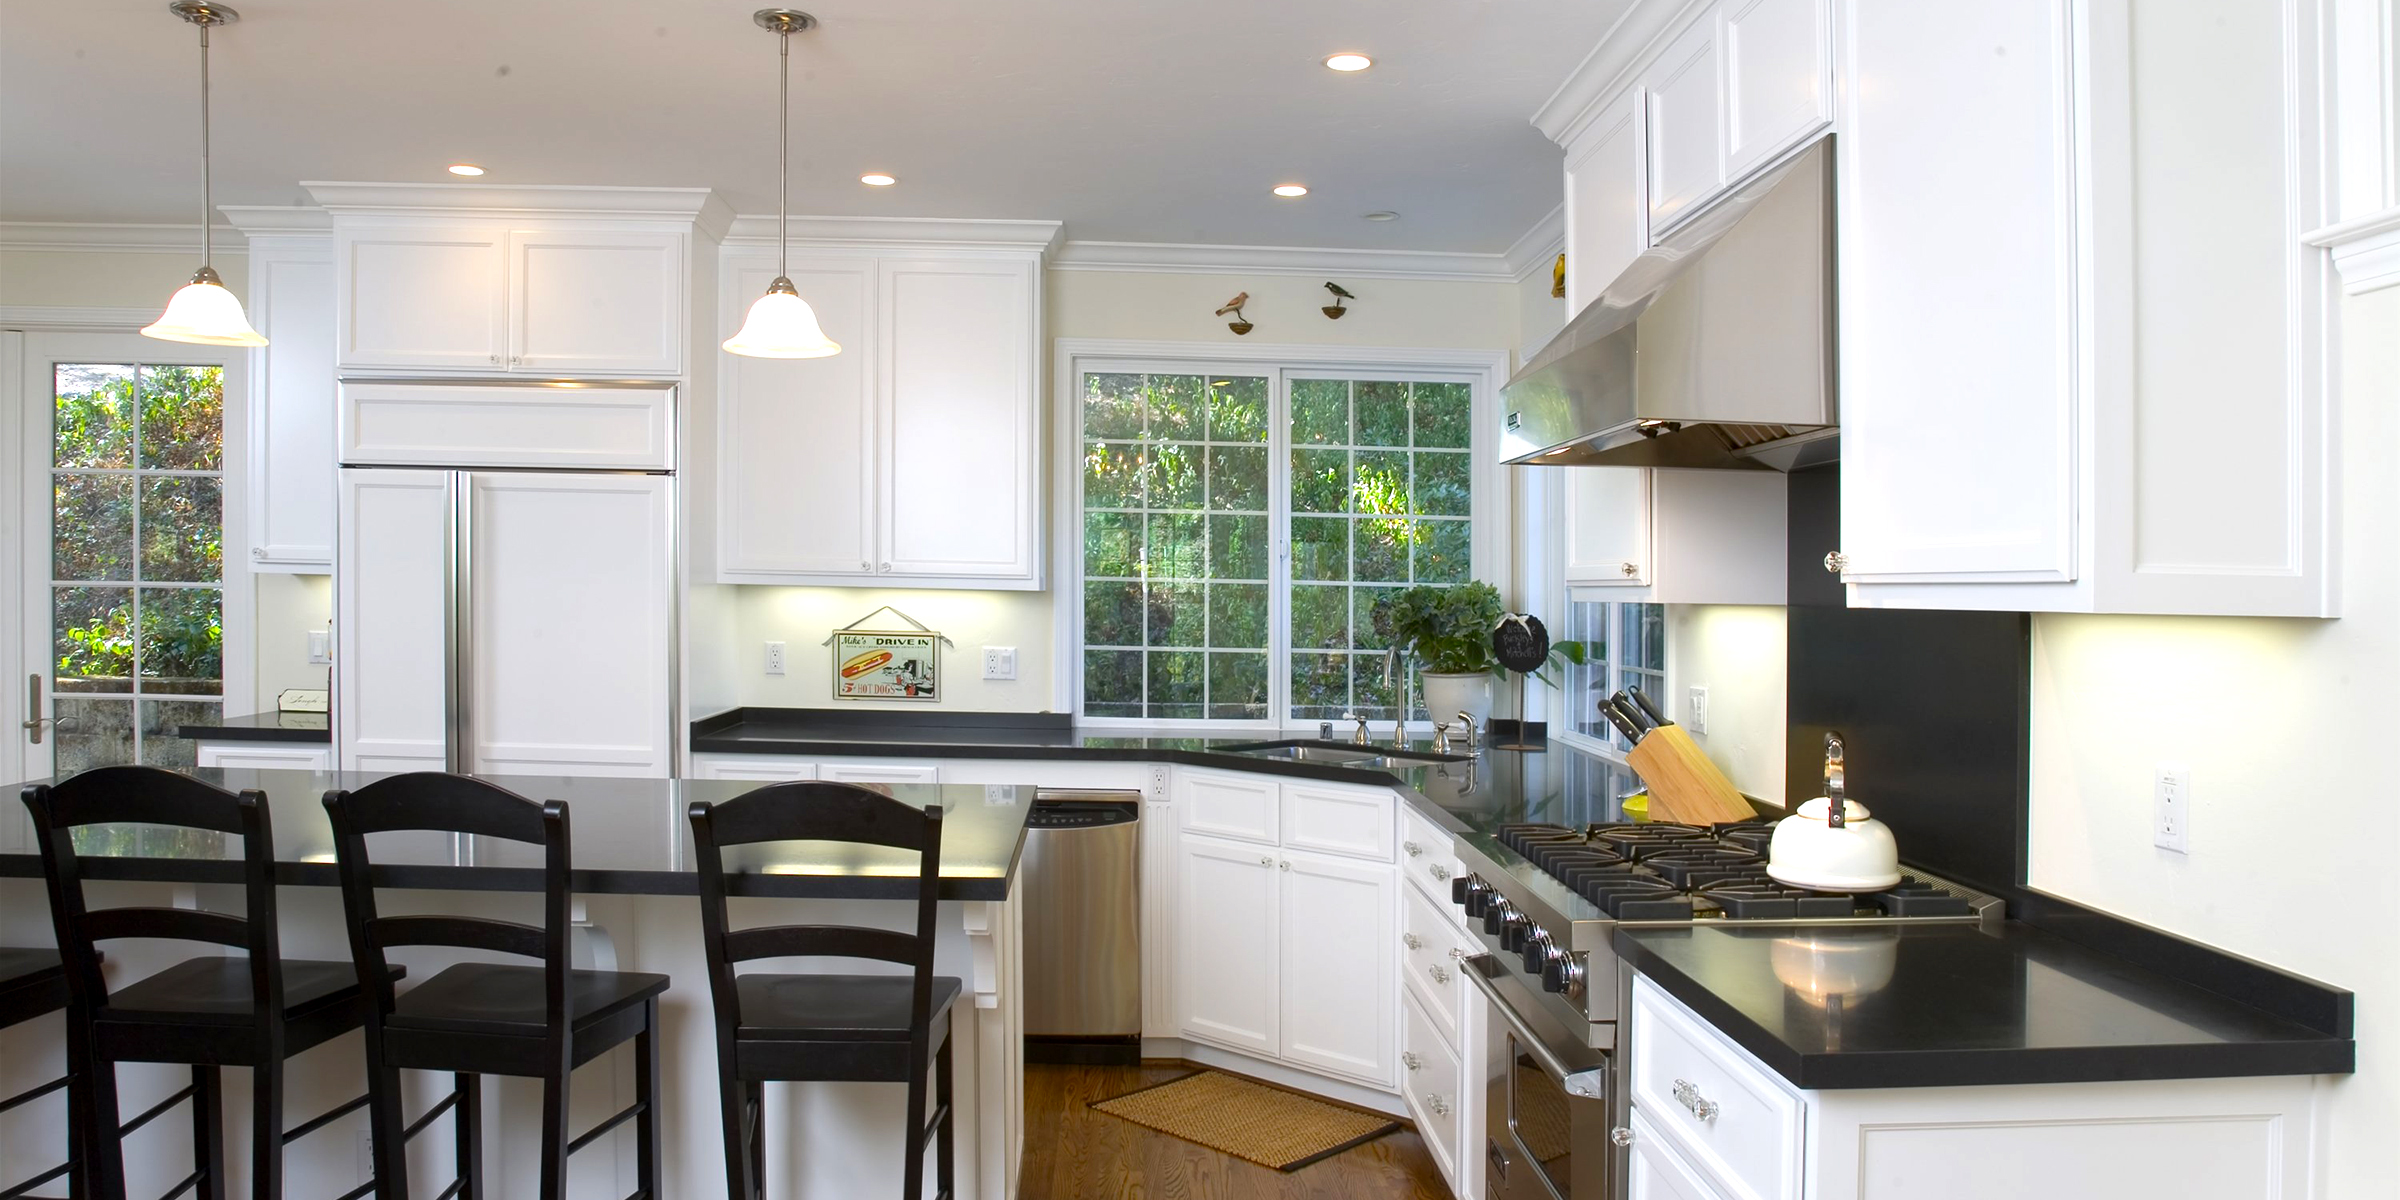 Kitchen Remodel Cost Where To Spend And How Save